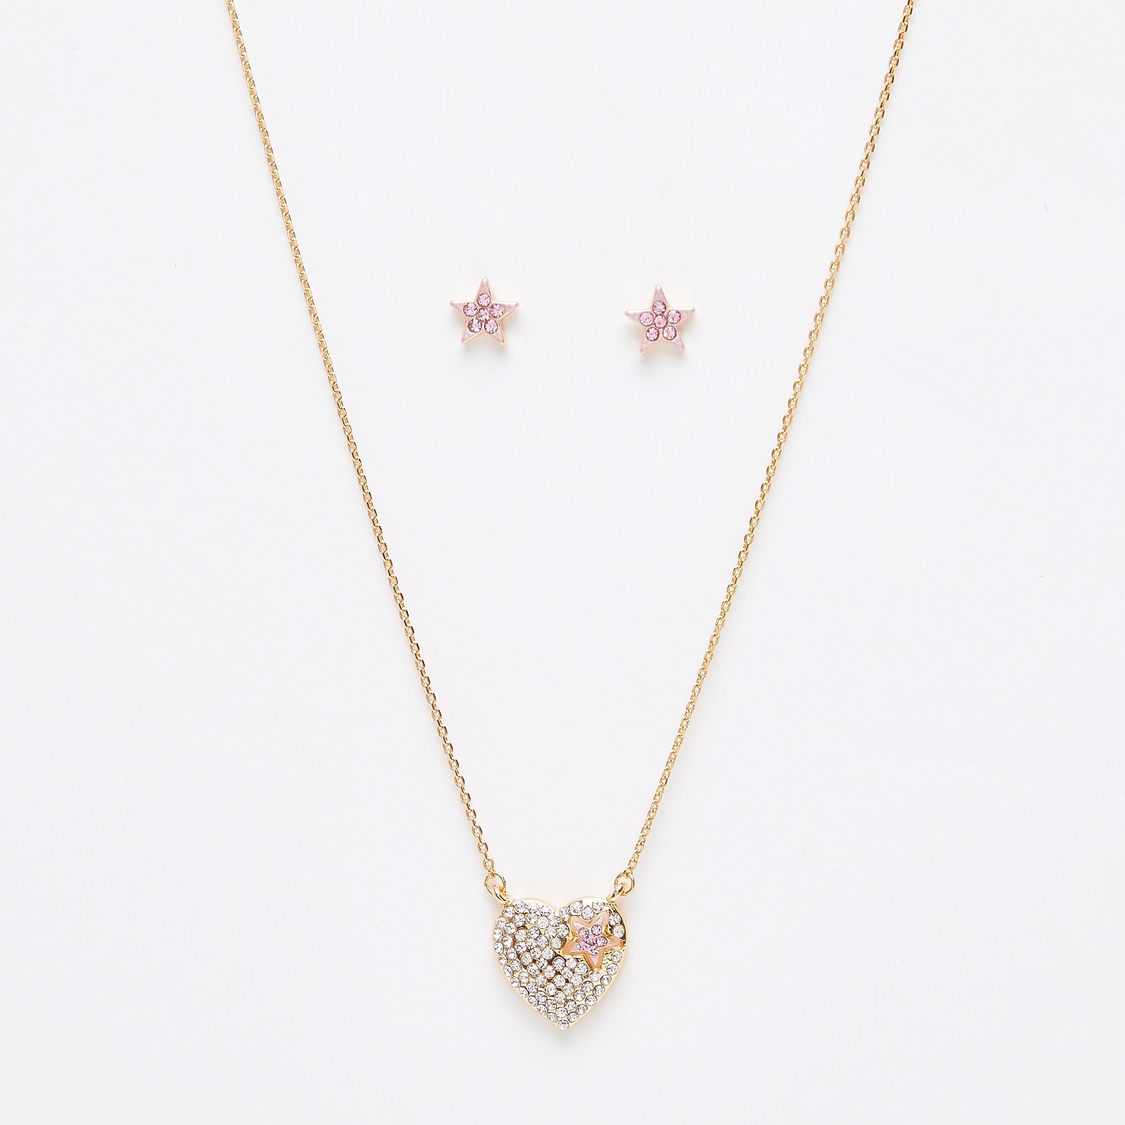 Embellished Pendant Necklace and Earrings Set